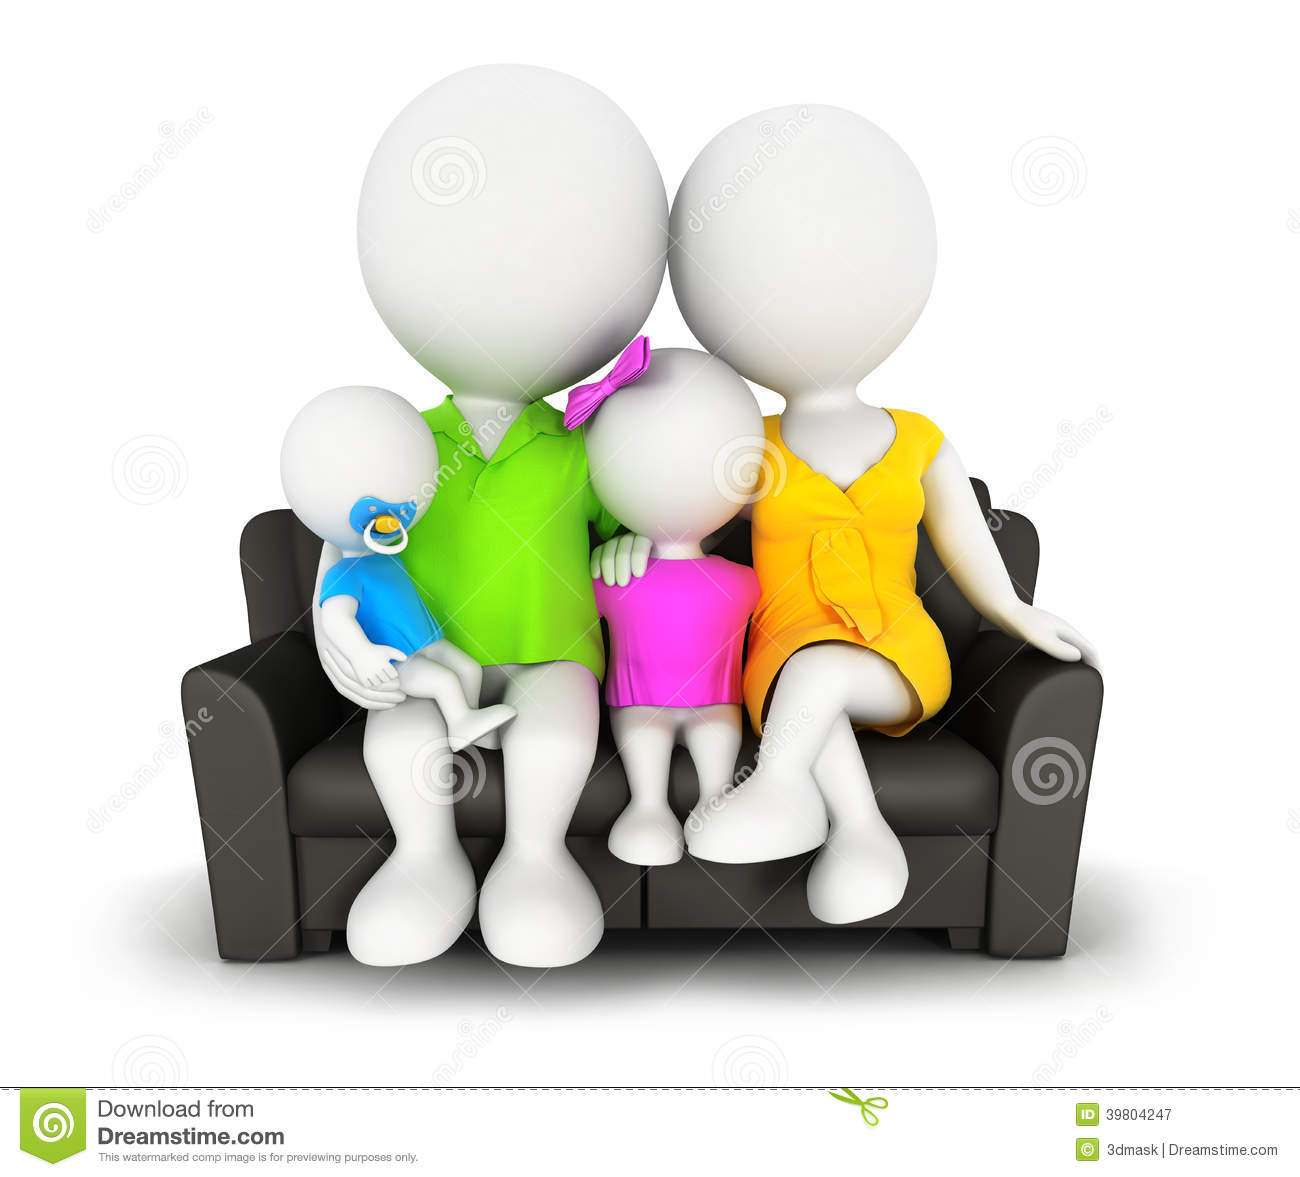 Car Credit Center >> 3d White People Family Sitting On Sofa Stock Illustration - Image: 39804247